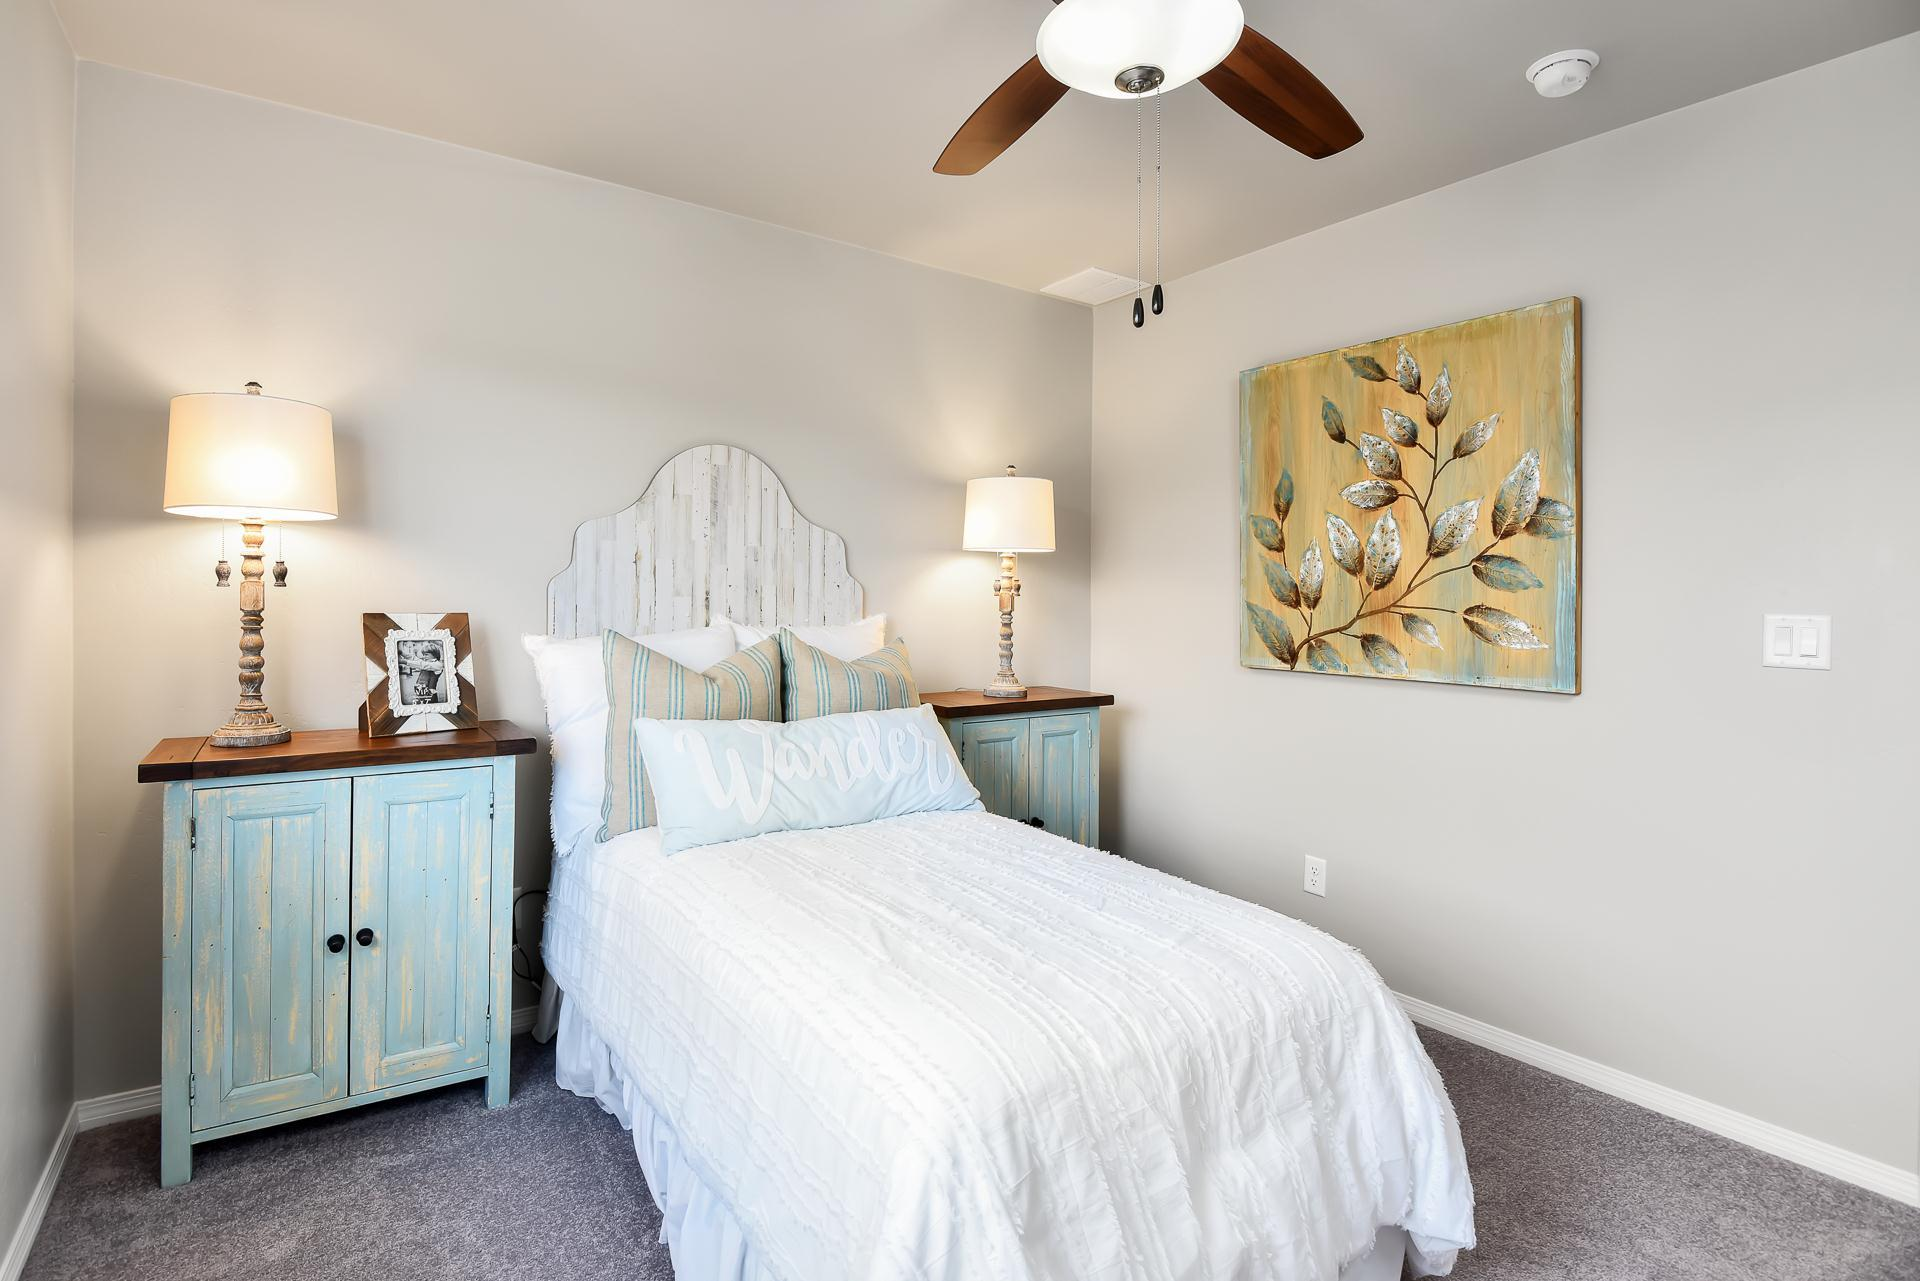 Bedroom featured in the Flagstaff Meadows Plan 2090 By Capstone Homes in Flagstaff, AZ